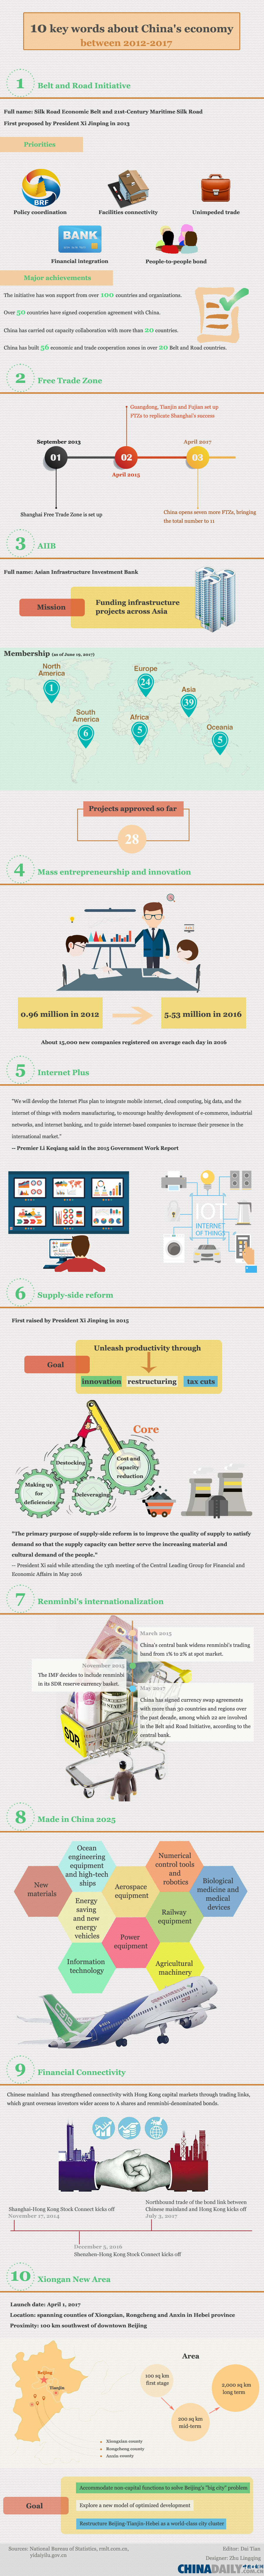 Infographic: 10 key words about China's economy